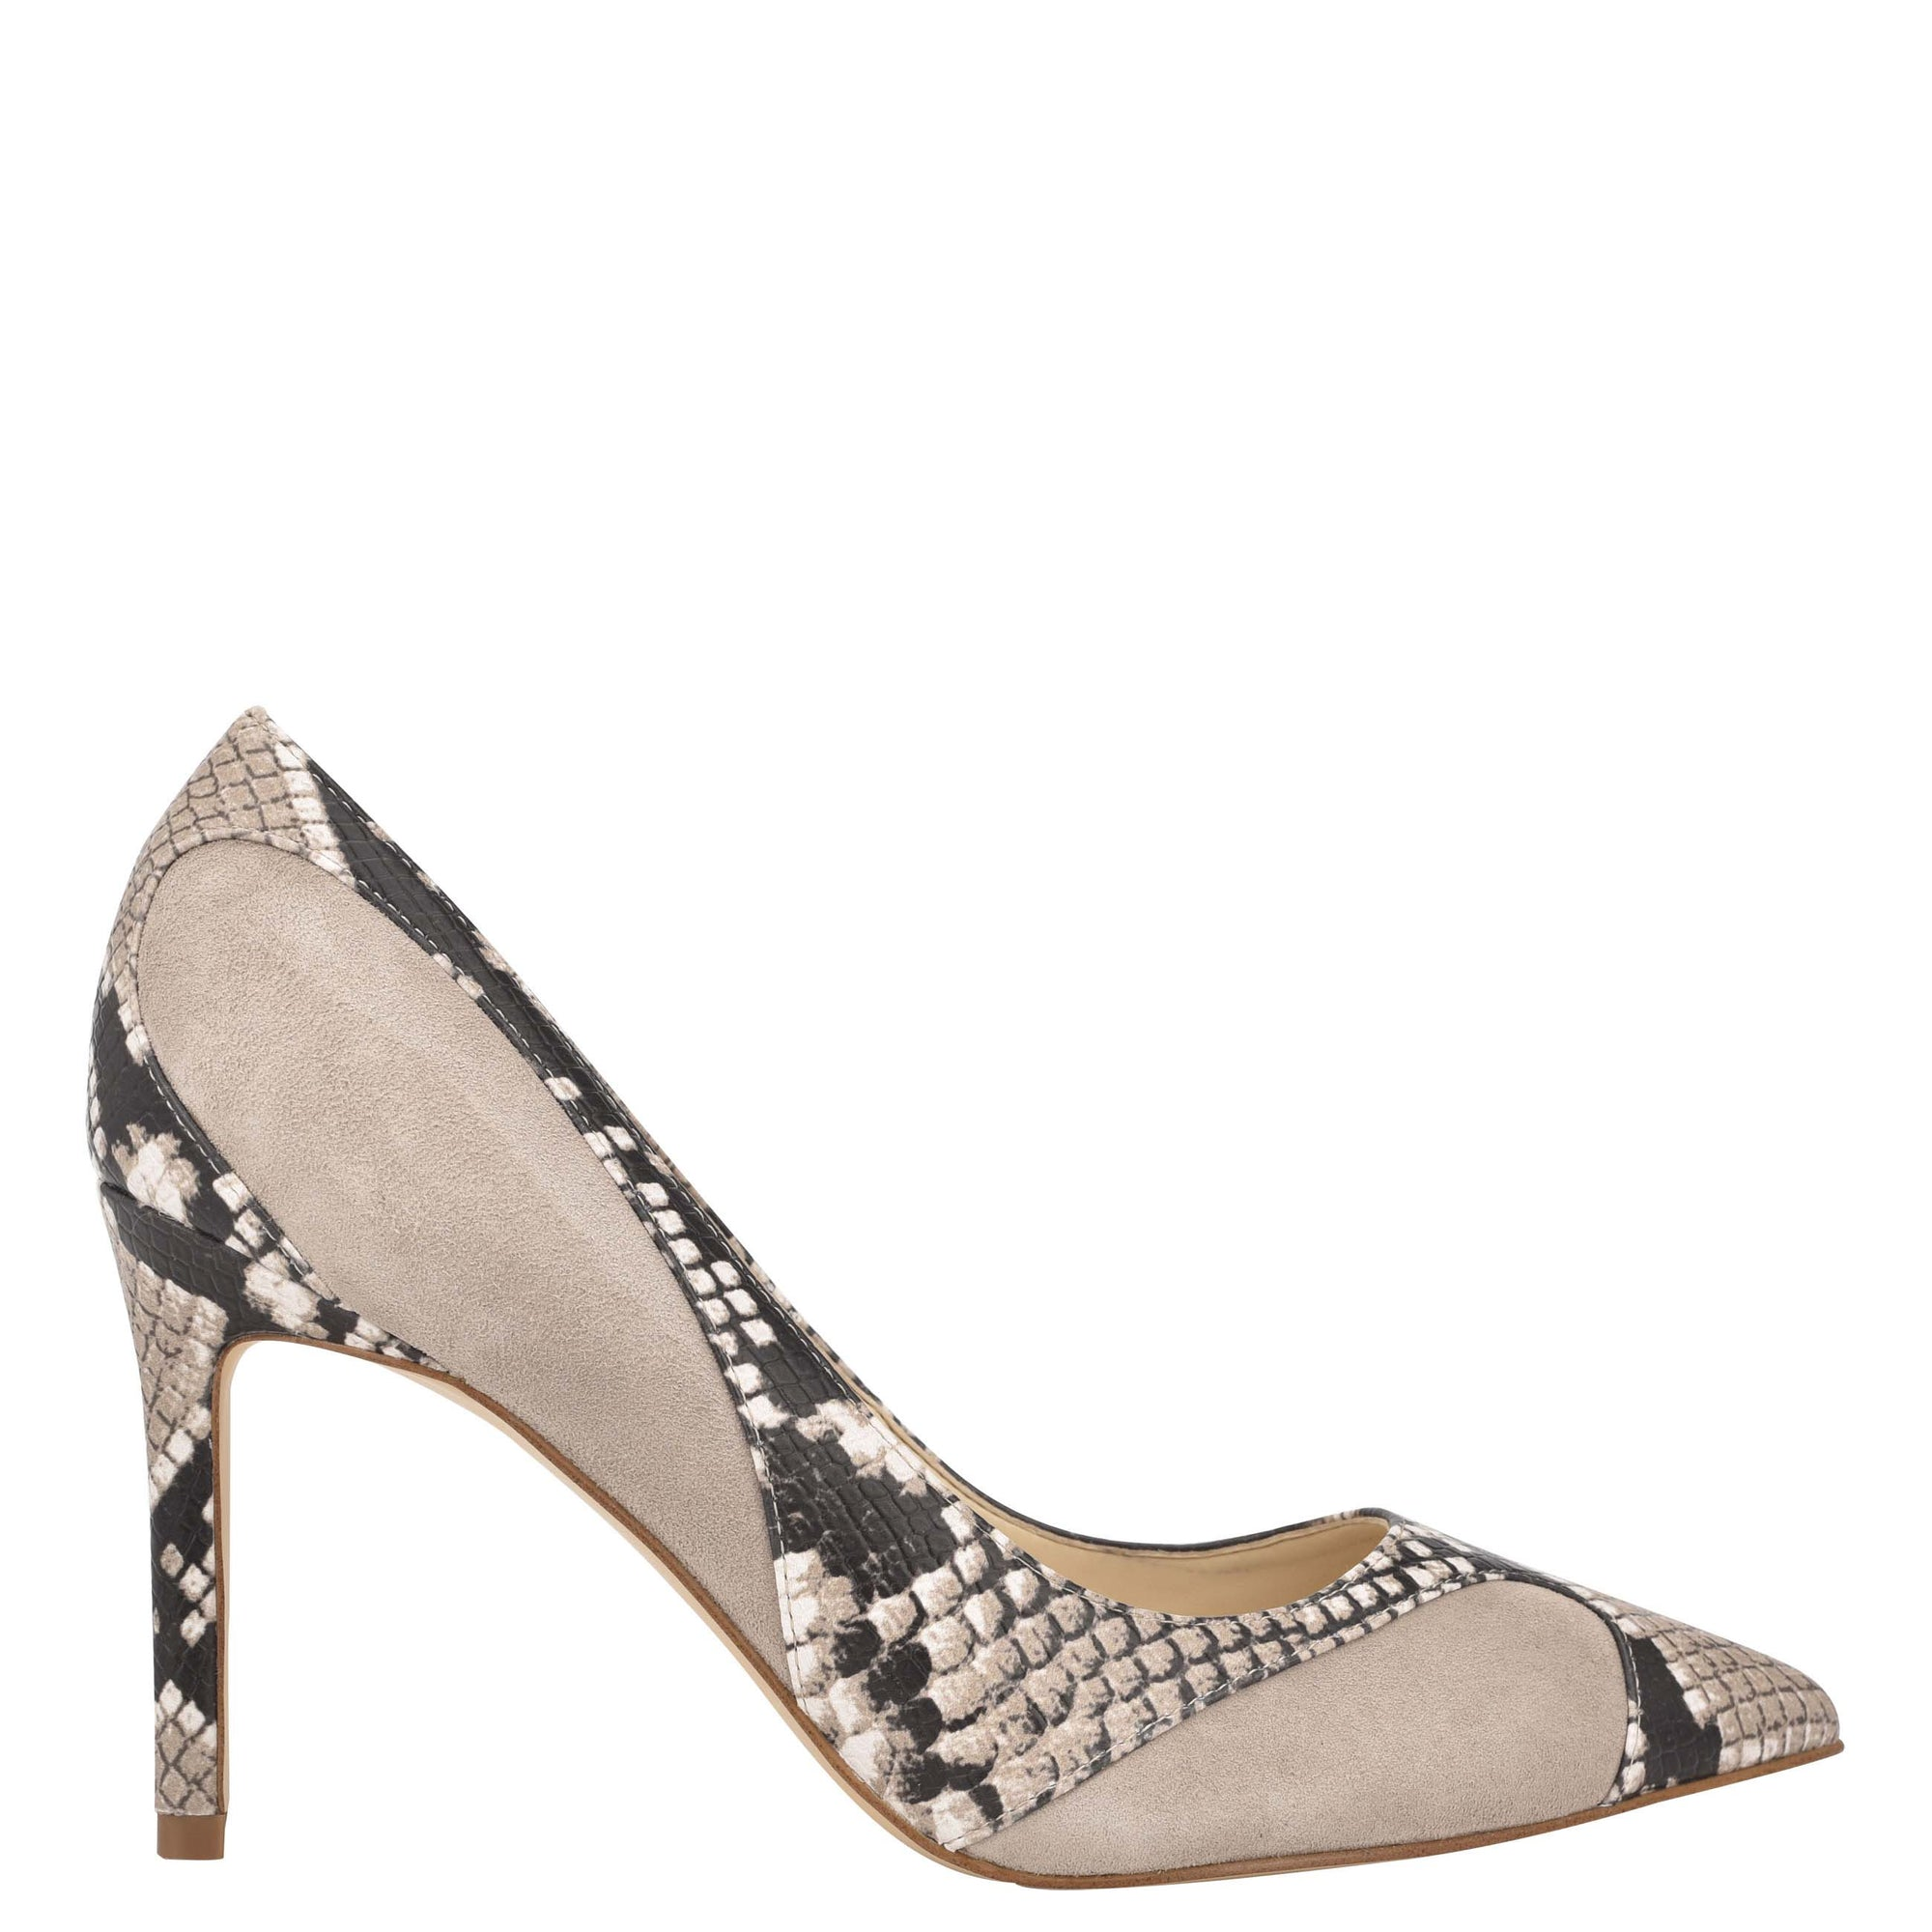 Elysa Pumps